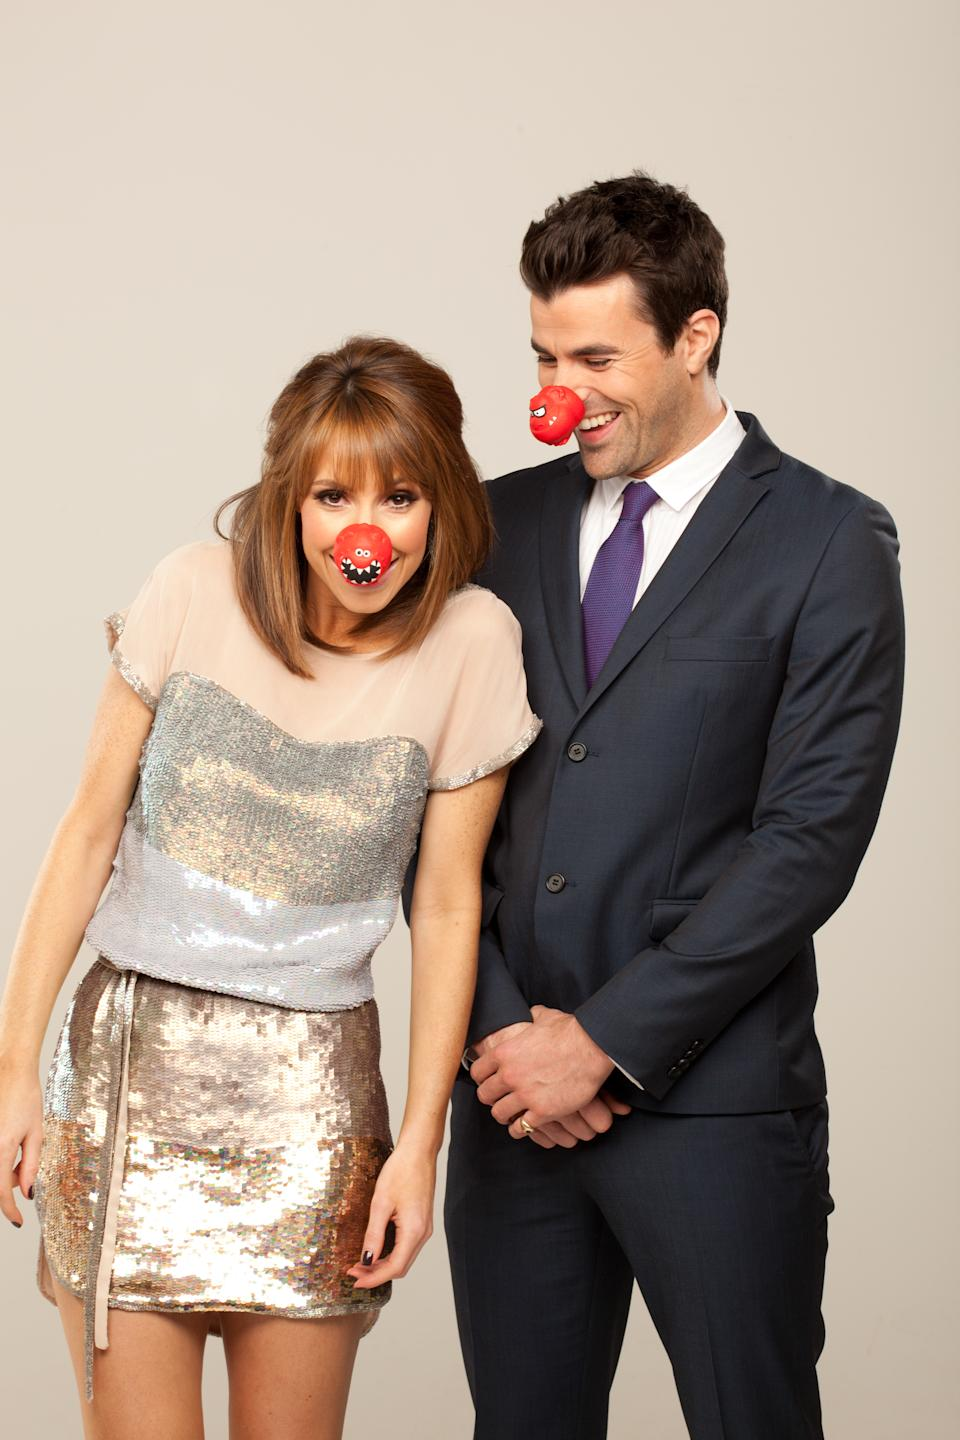 LONDON - DECEMBER 22: Welsh television presenters Steve Jones and Alex Jones, wearing a Red Nose Day 2013 nose and t-shirt for Red Nose Day 2013, in the studio on 22 December, 2012 in London. (Photo by Gary Moyes/Comic Relief/Getty Images)